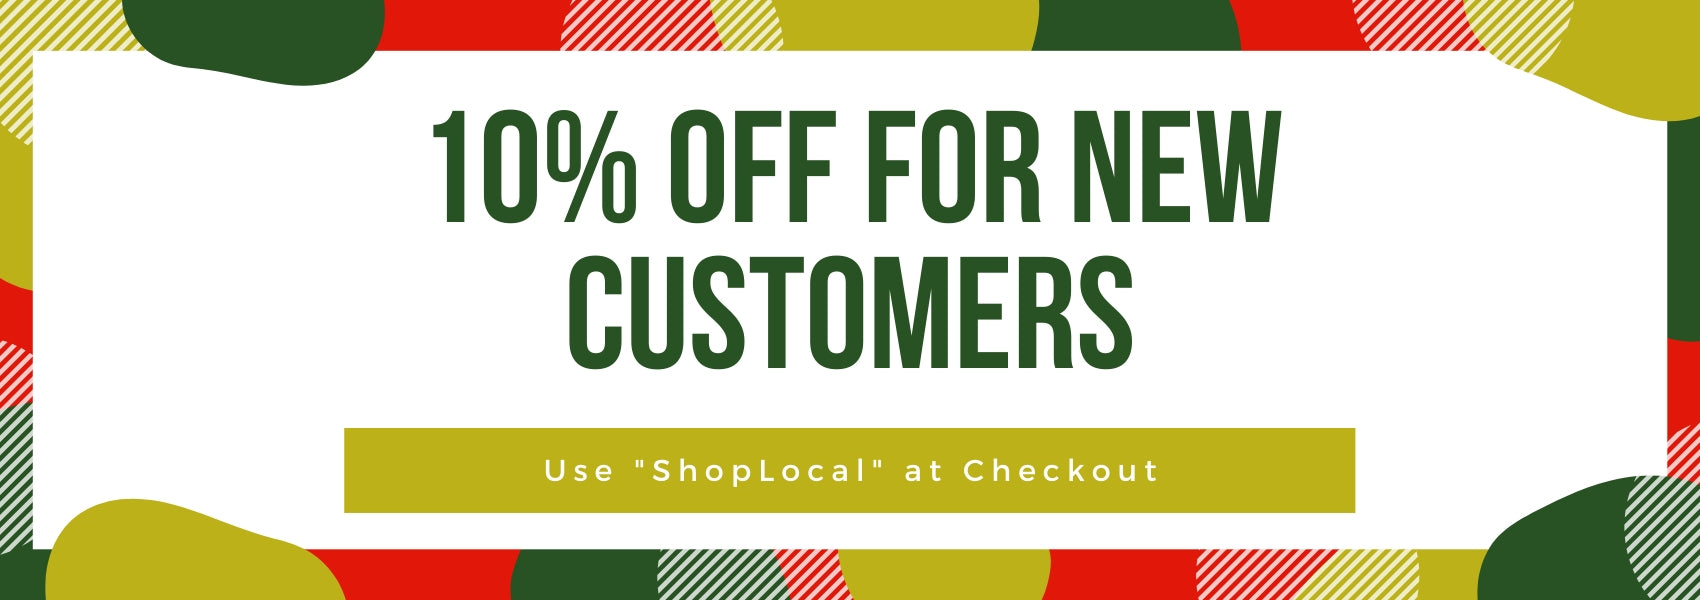 10% off new customers